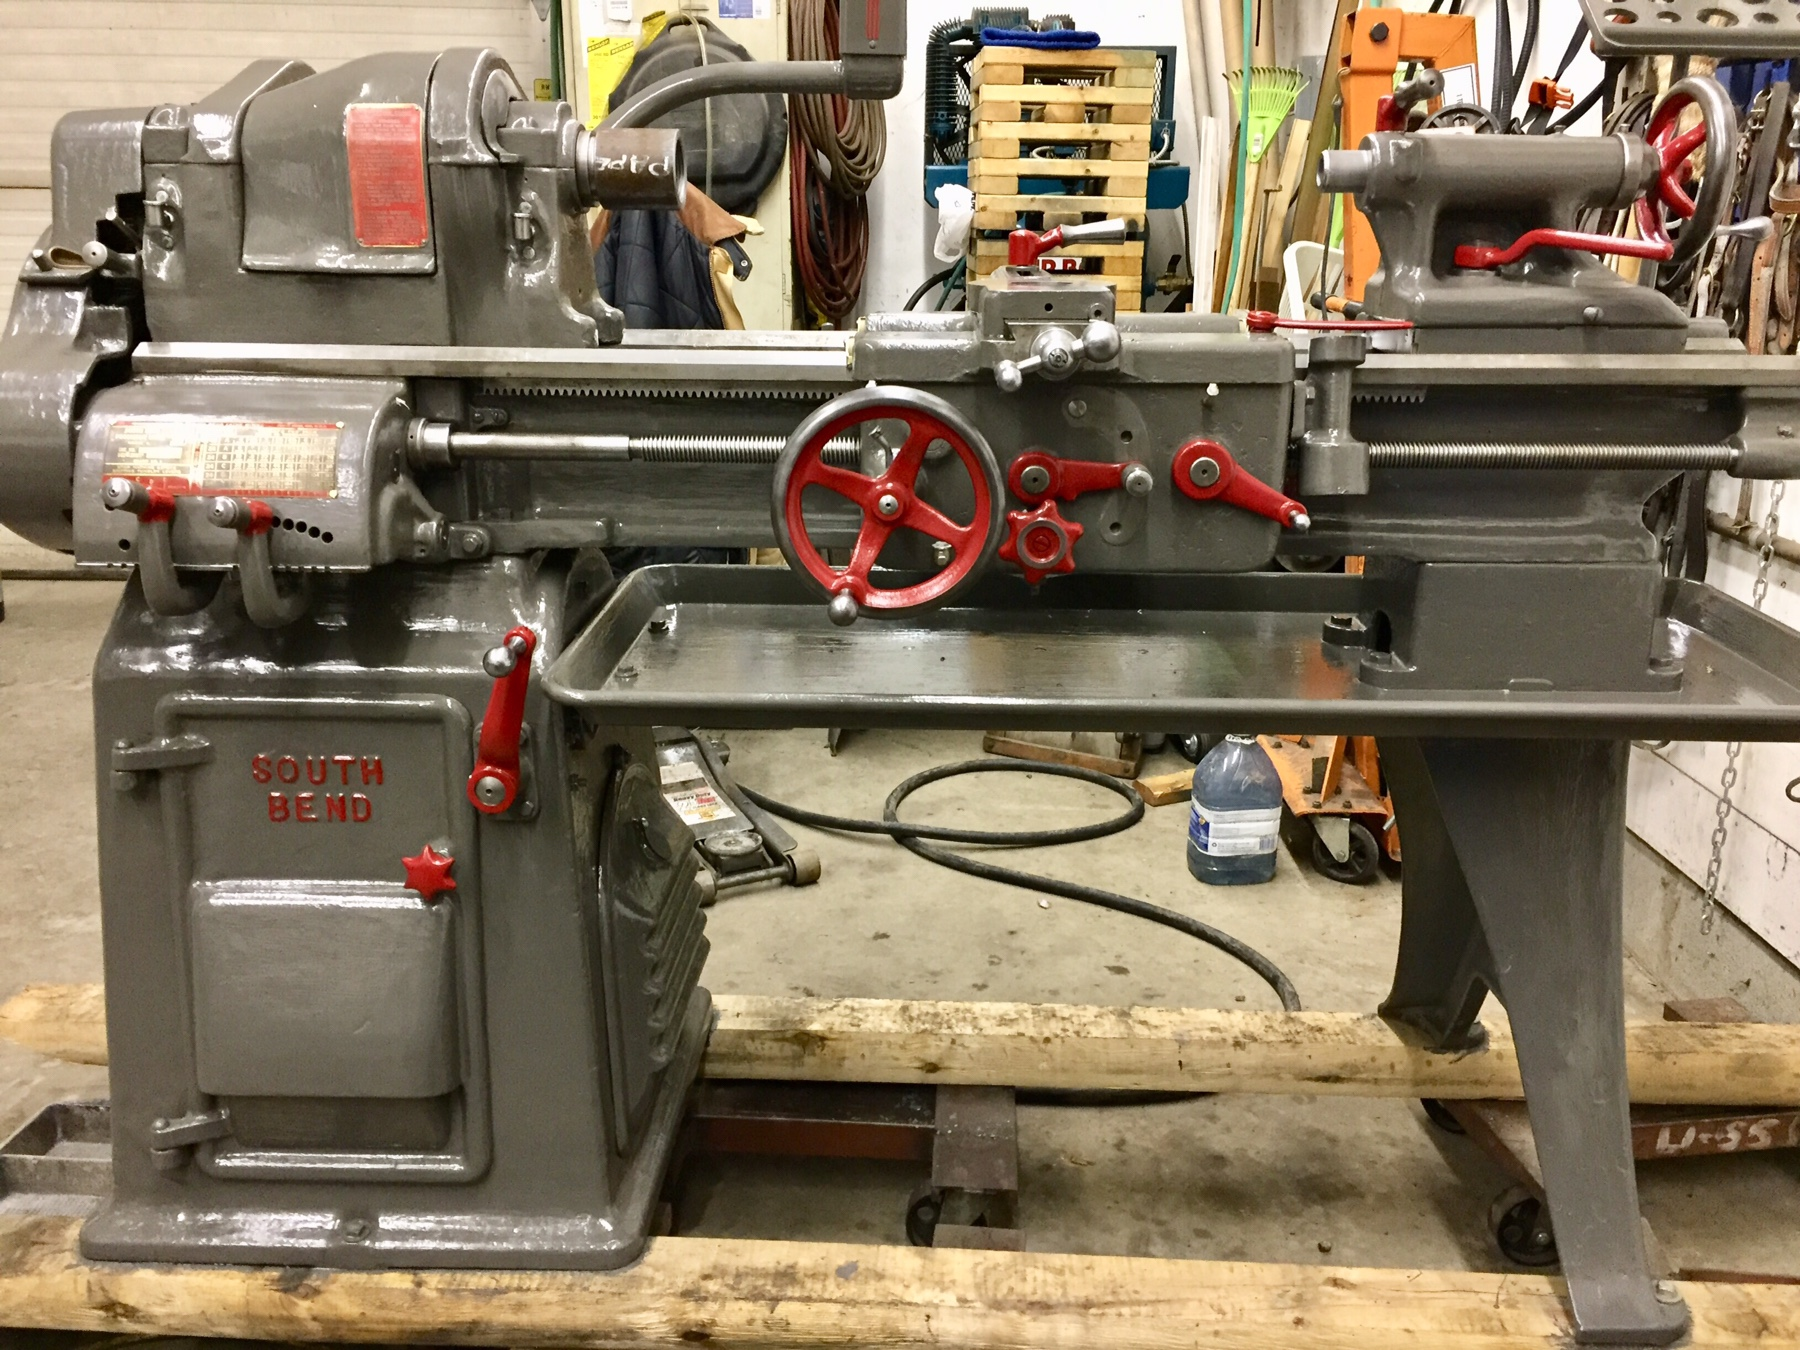 Technical - Advice on Buying a Metal Lathe | Page 3 | The